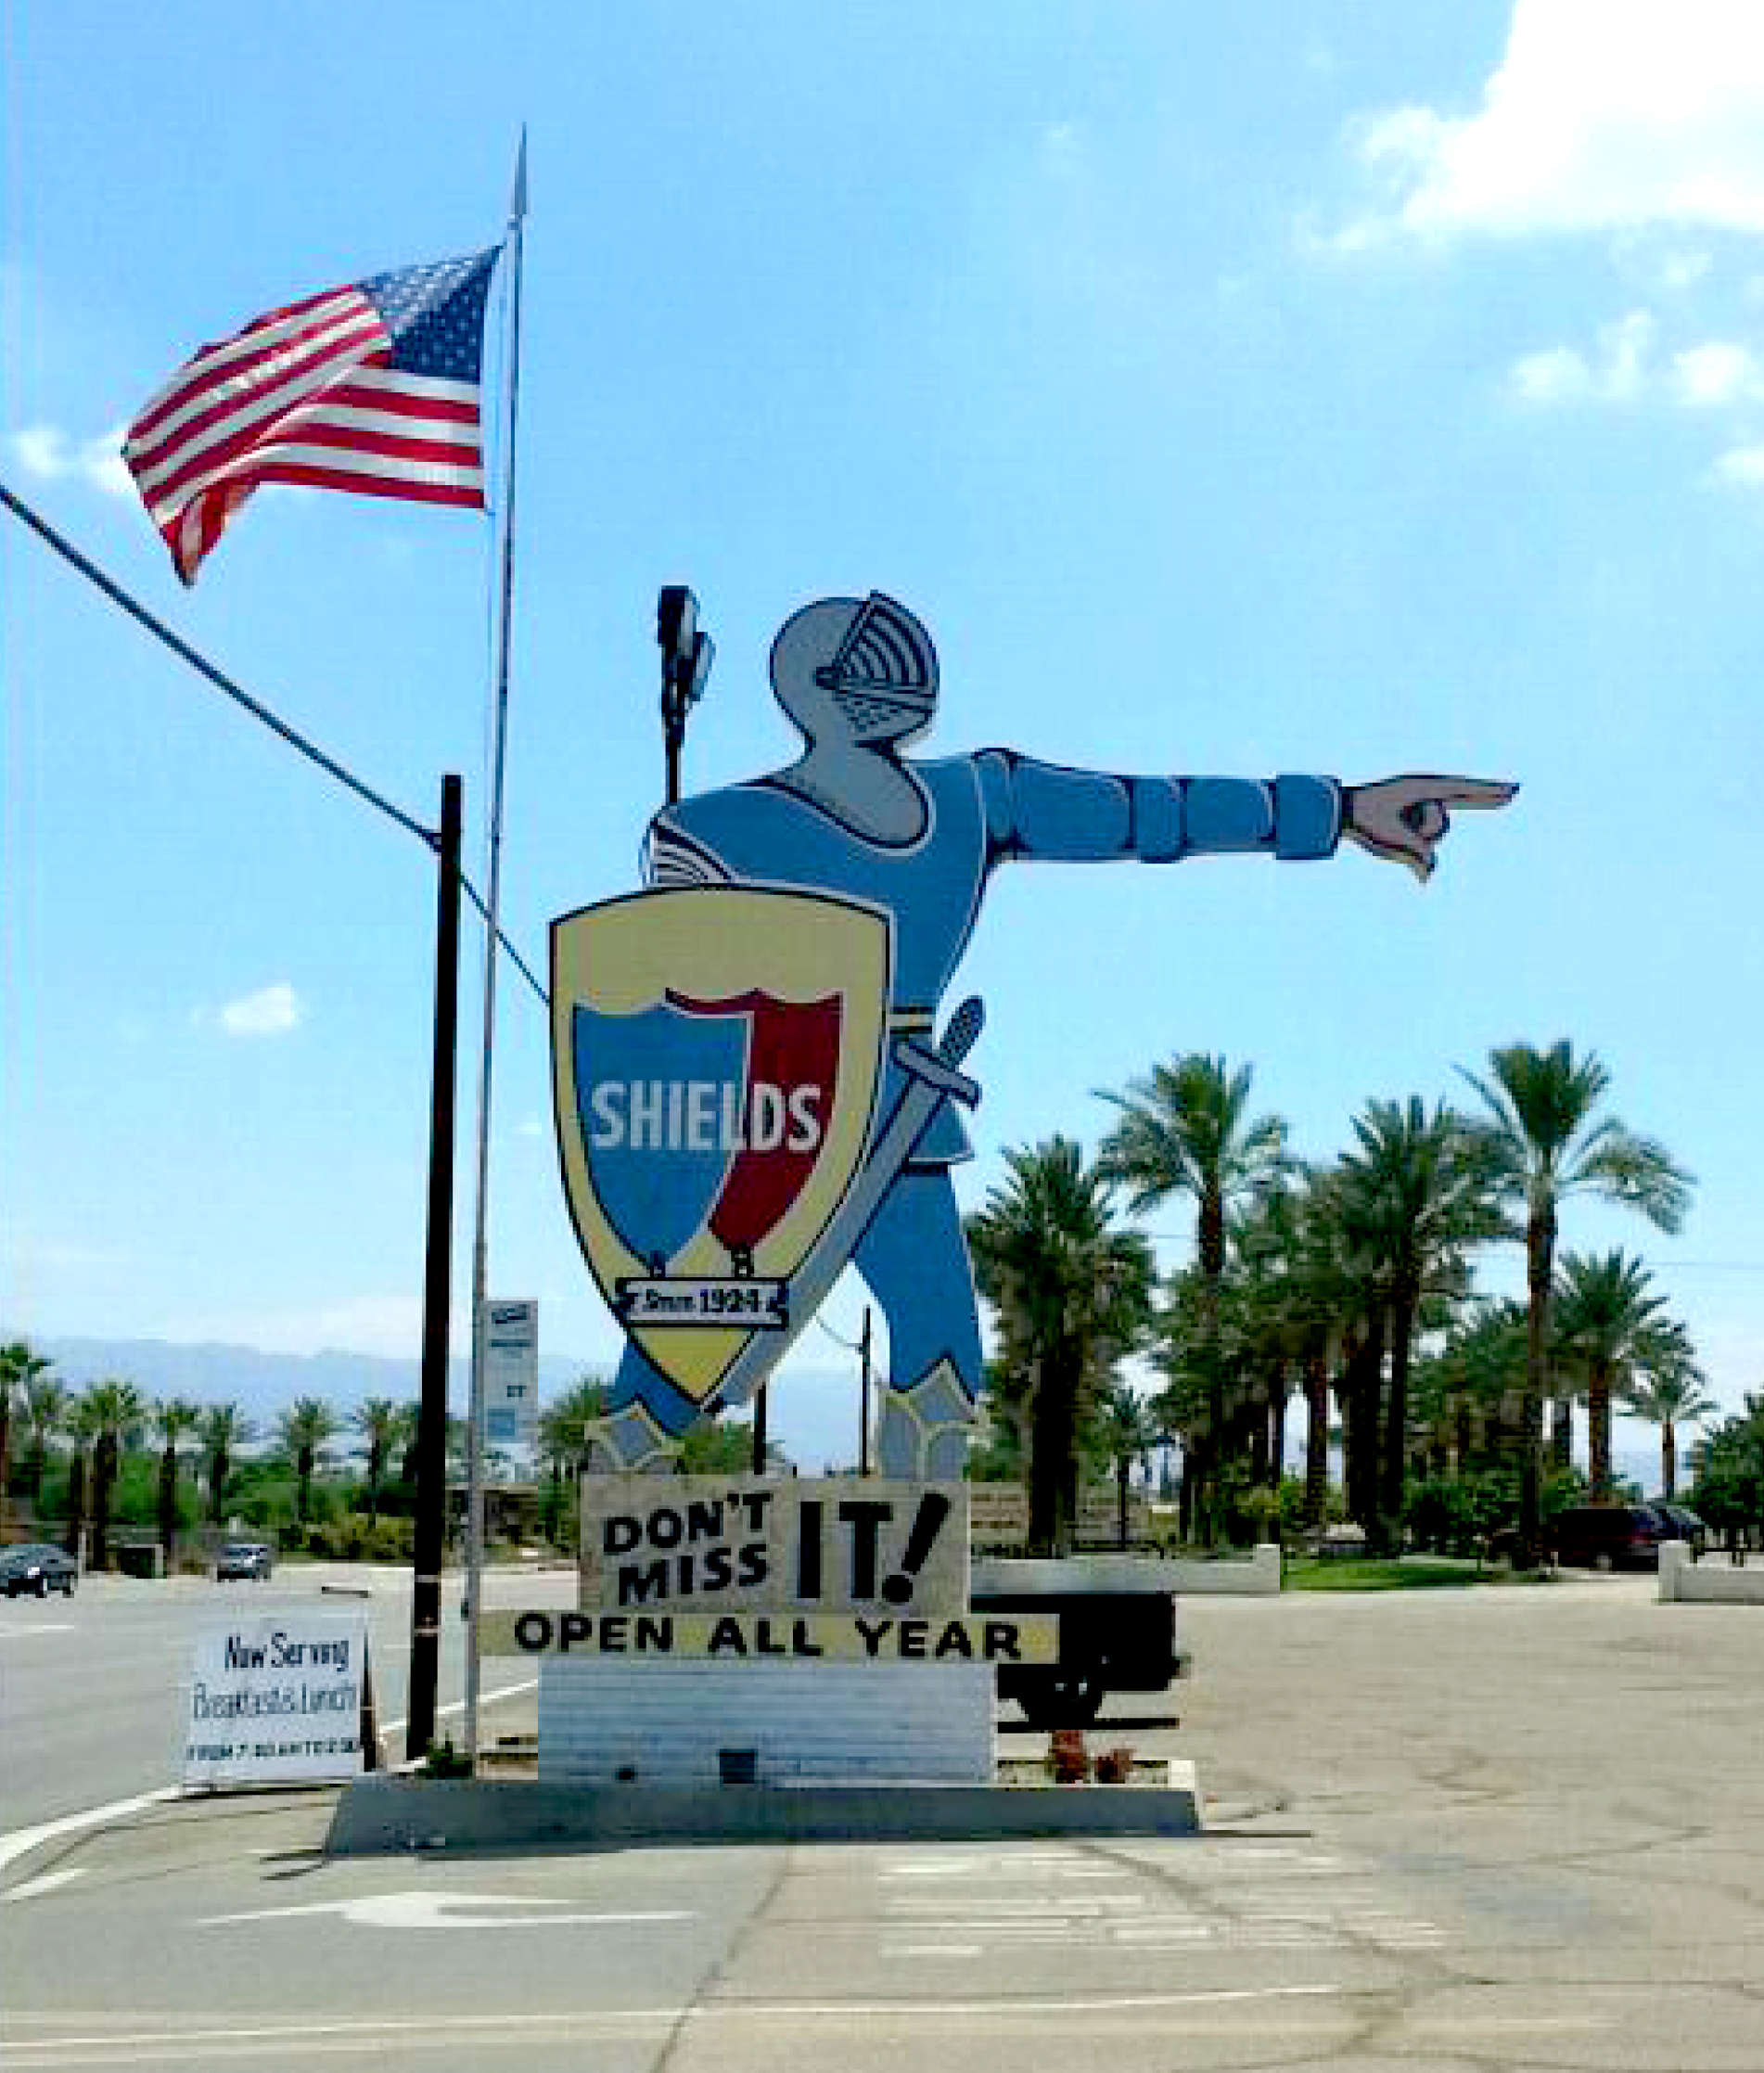 heres a perfect spot for a date seriously no pun intended shields date gardens in indio is a fantastic local spot to take your special lady for a little - Shields Date Garden